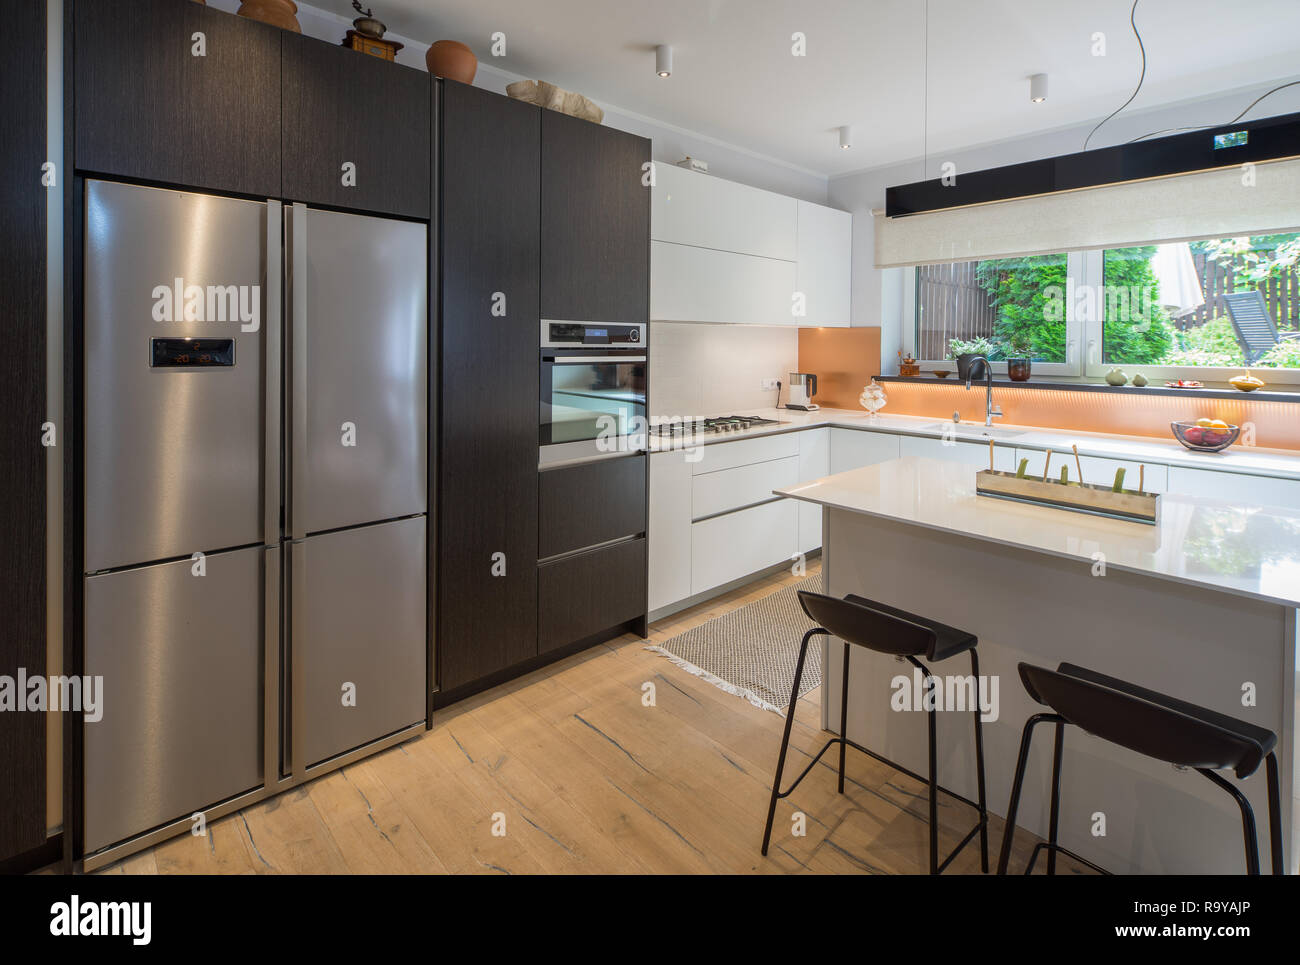 Kitchen in the house. Modern interior. Domestic things. Stock Photo